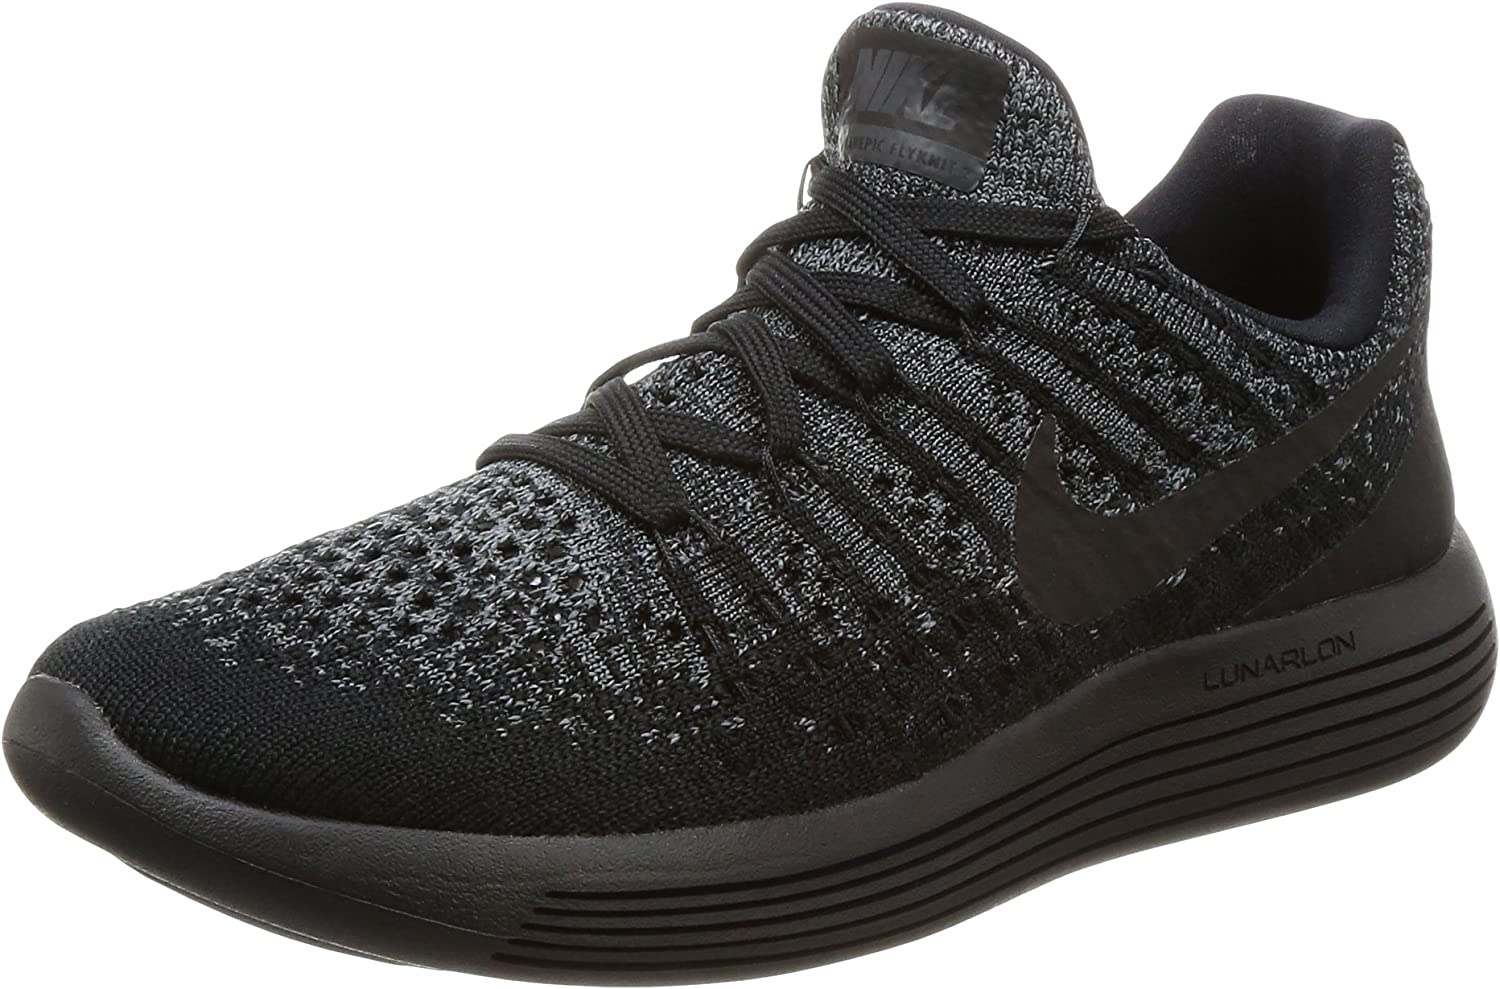 Nike Women s Lunarepic Low Flyknit 2 Running Shoe Black Black-Dark Grey-Racer Blue 7.5